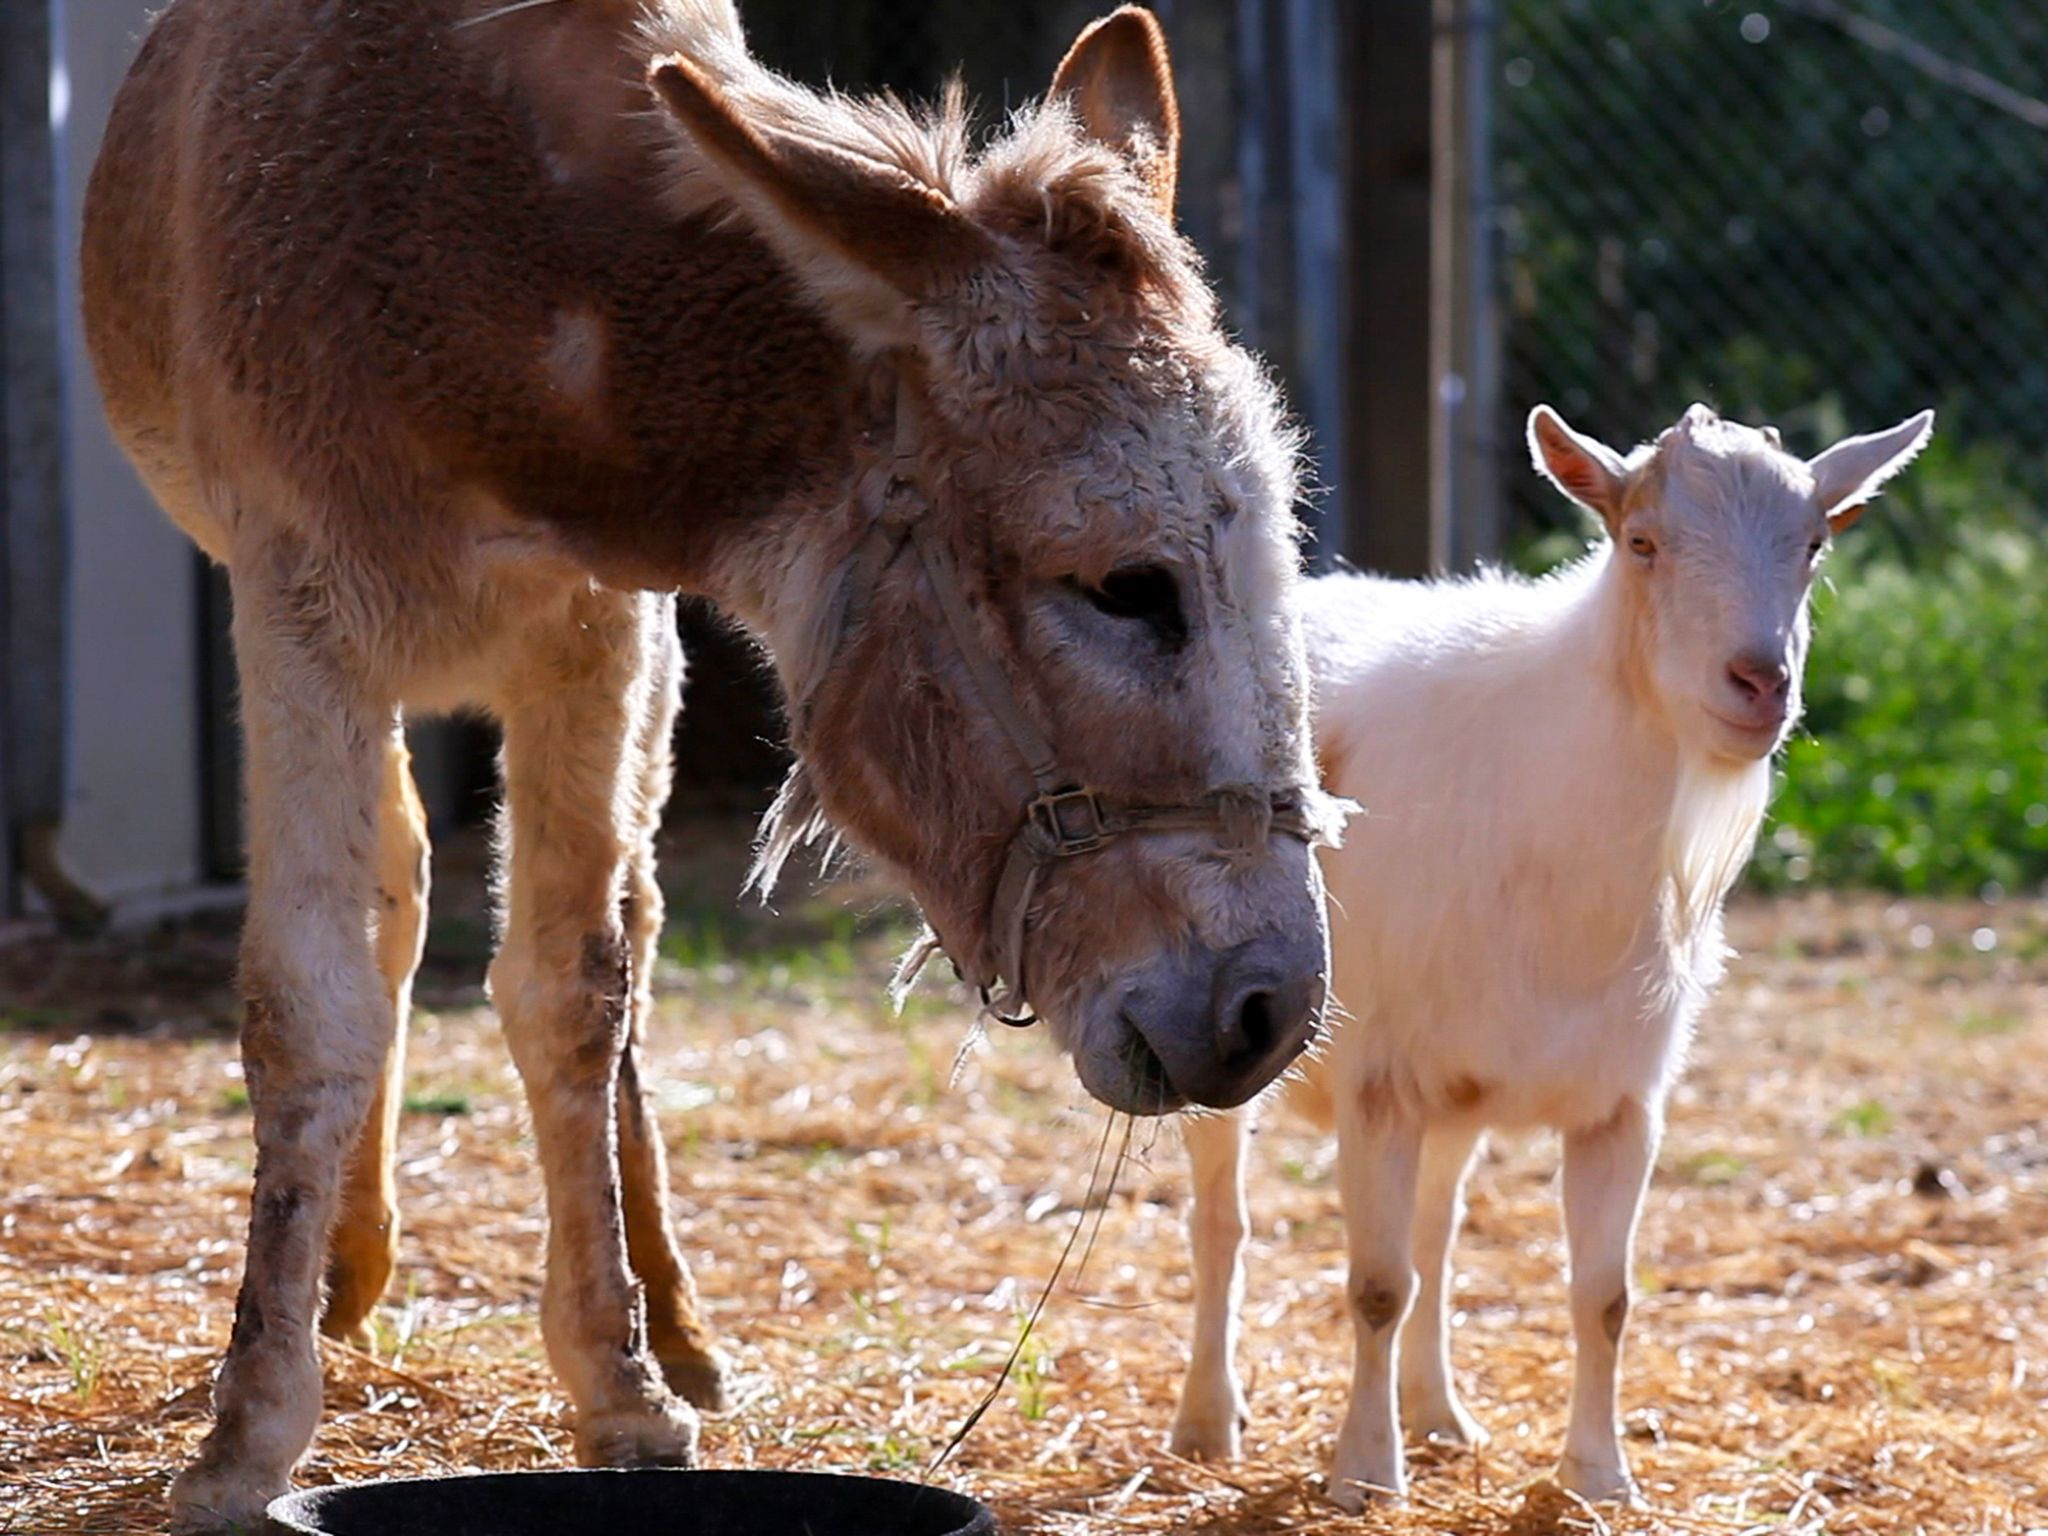 Grass Valley, CA.:  Unlikely animal friends Jellybean, a donkey, and  Mr. G, a goat, stand... [Photo of the day - April 2015]